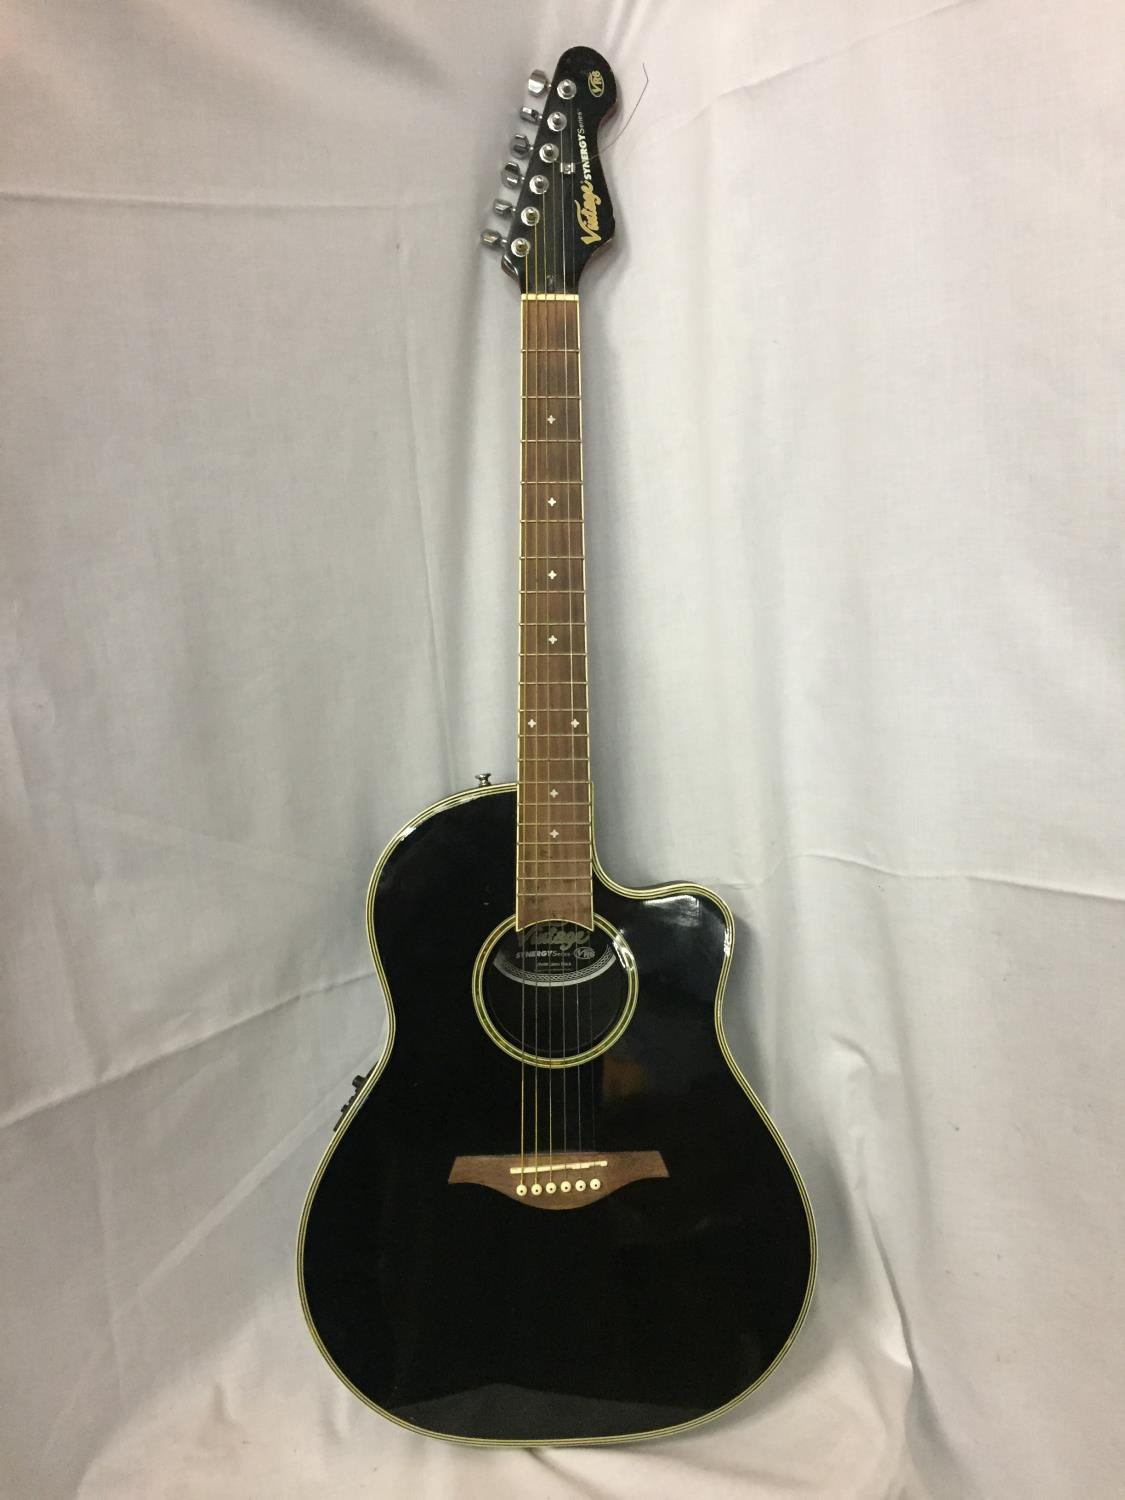 A BLACK VINTAGE SYNERGY SERIES GUITAR - Image 2 of 10